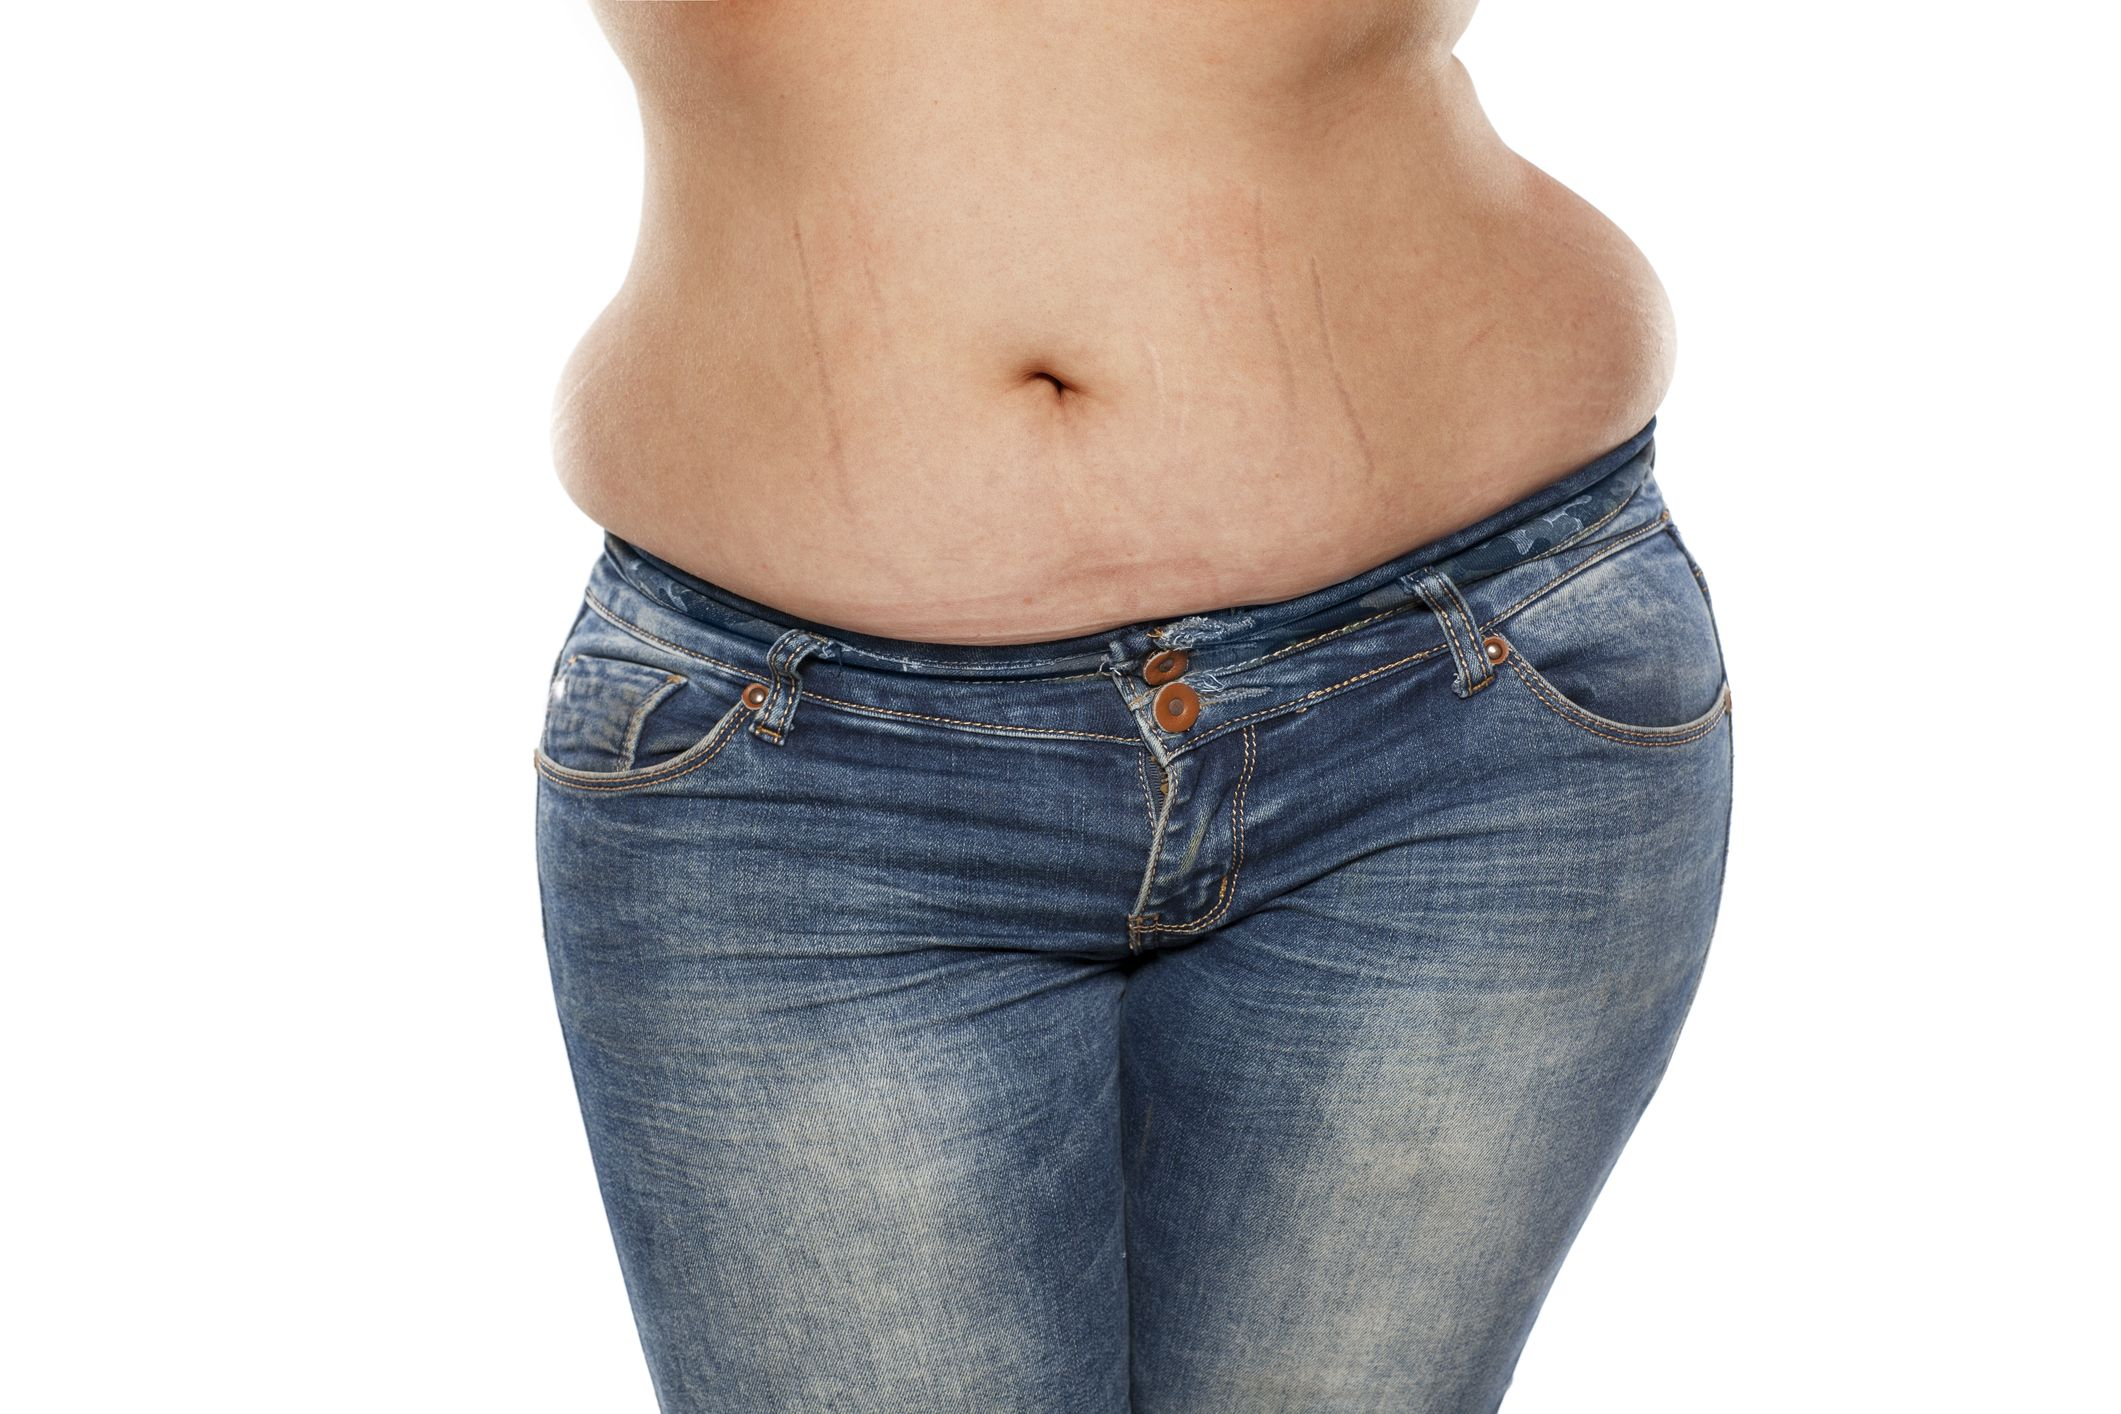 stretch marks on the stomach of a fat woman in jeans on a white background